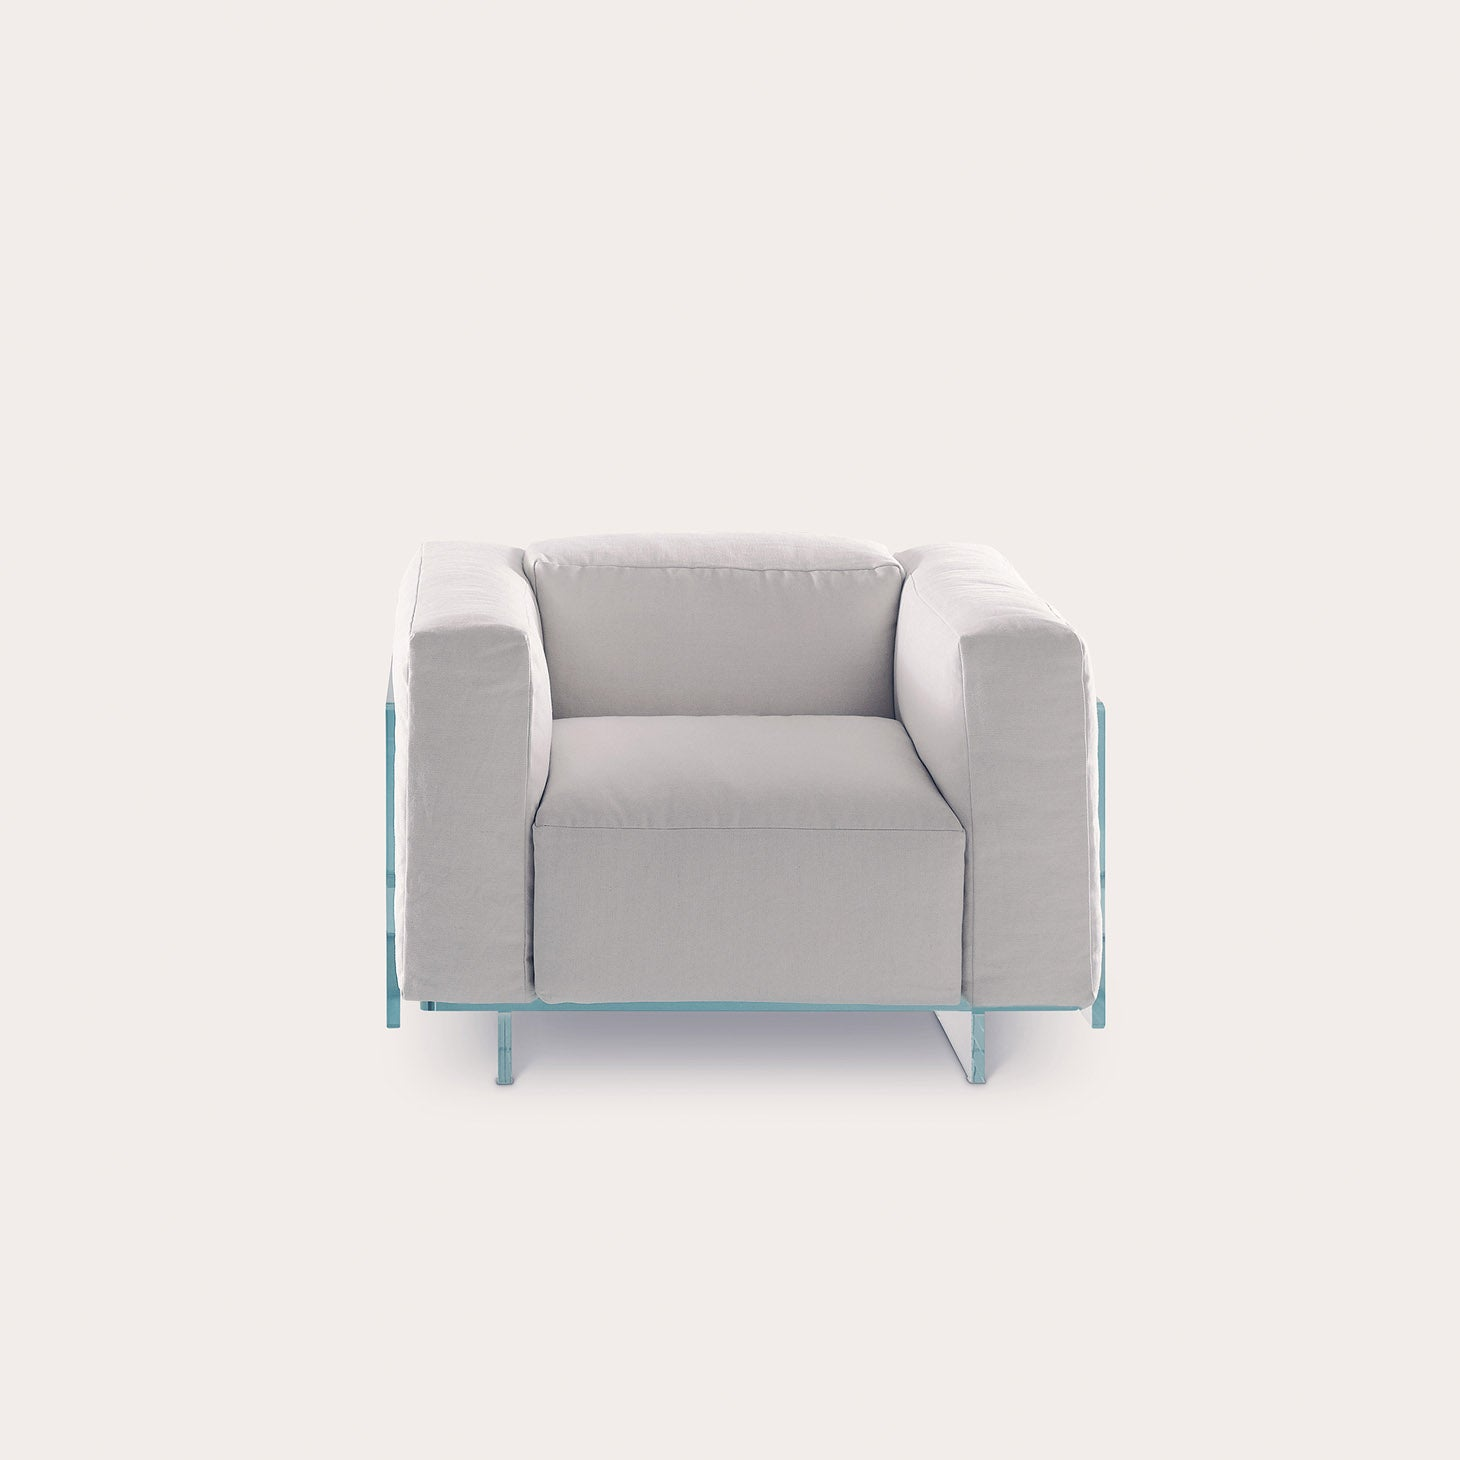 Crystal Lounge Seating Jean-Marie Massaud Designer Furniture Sku: 288-240-10021